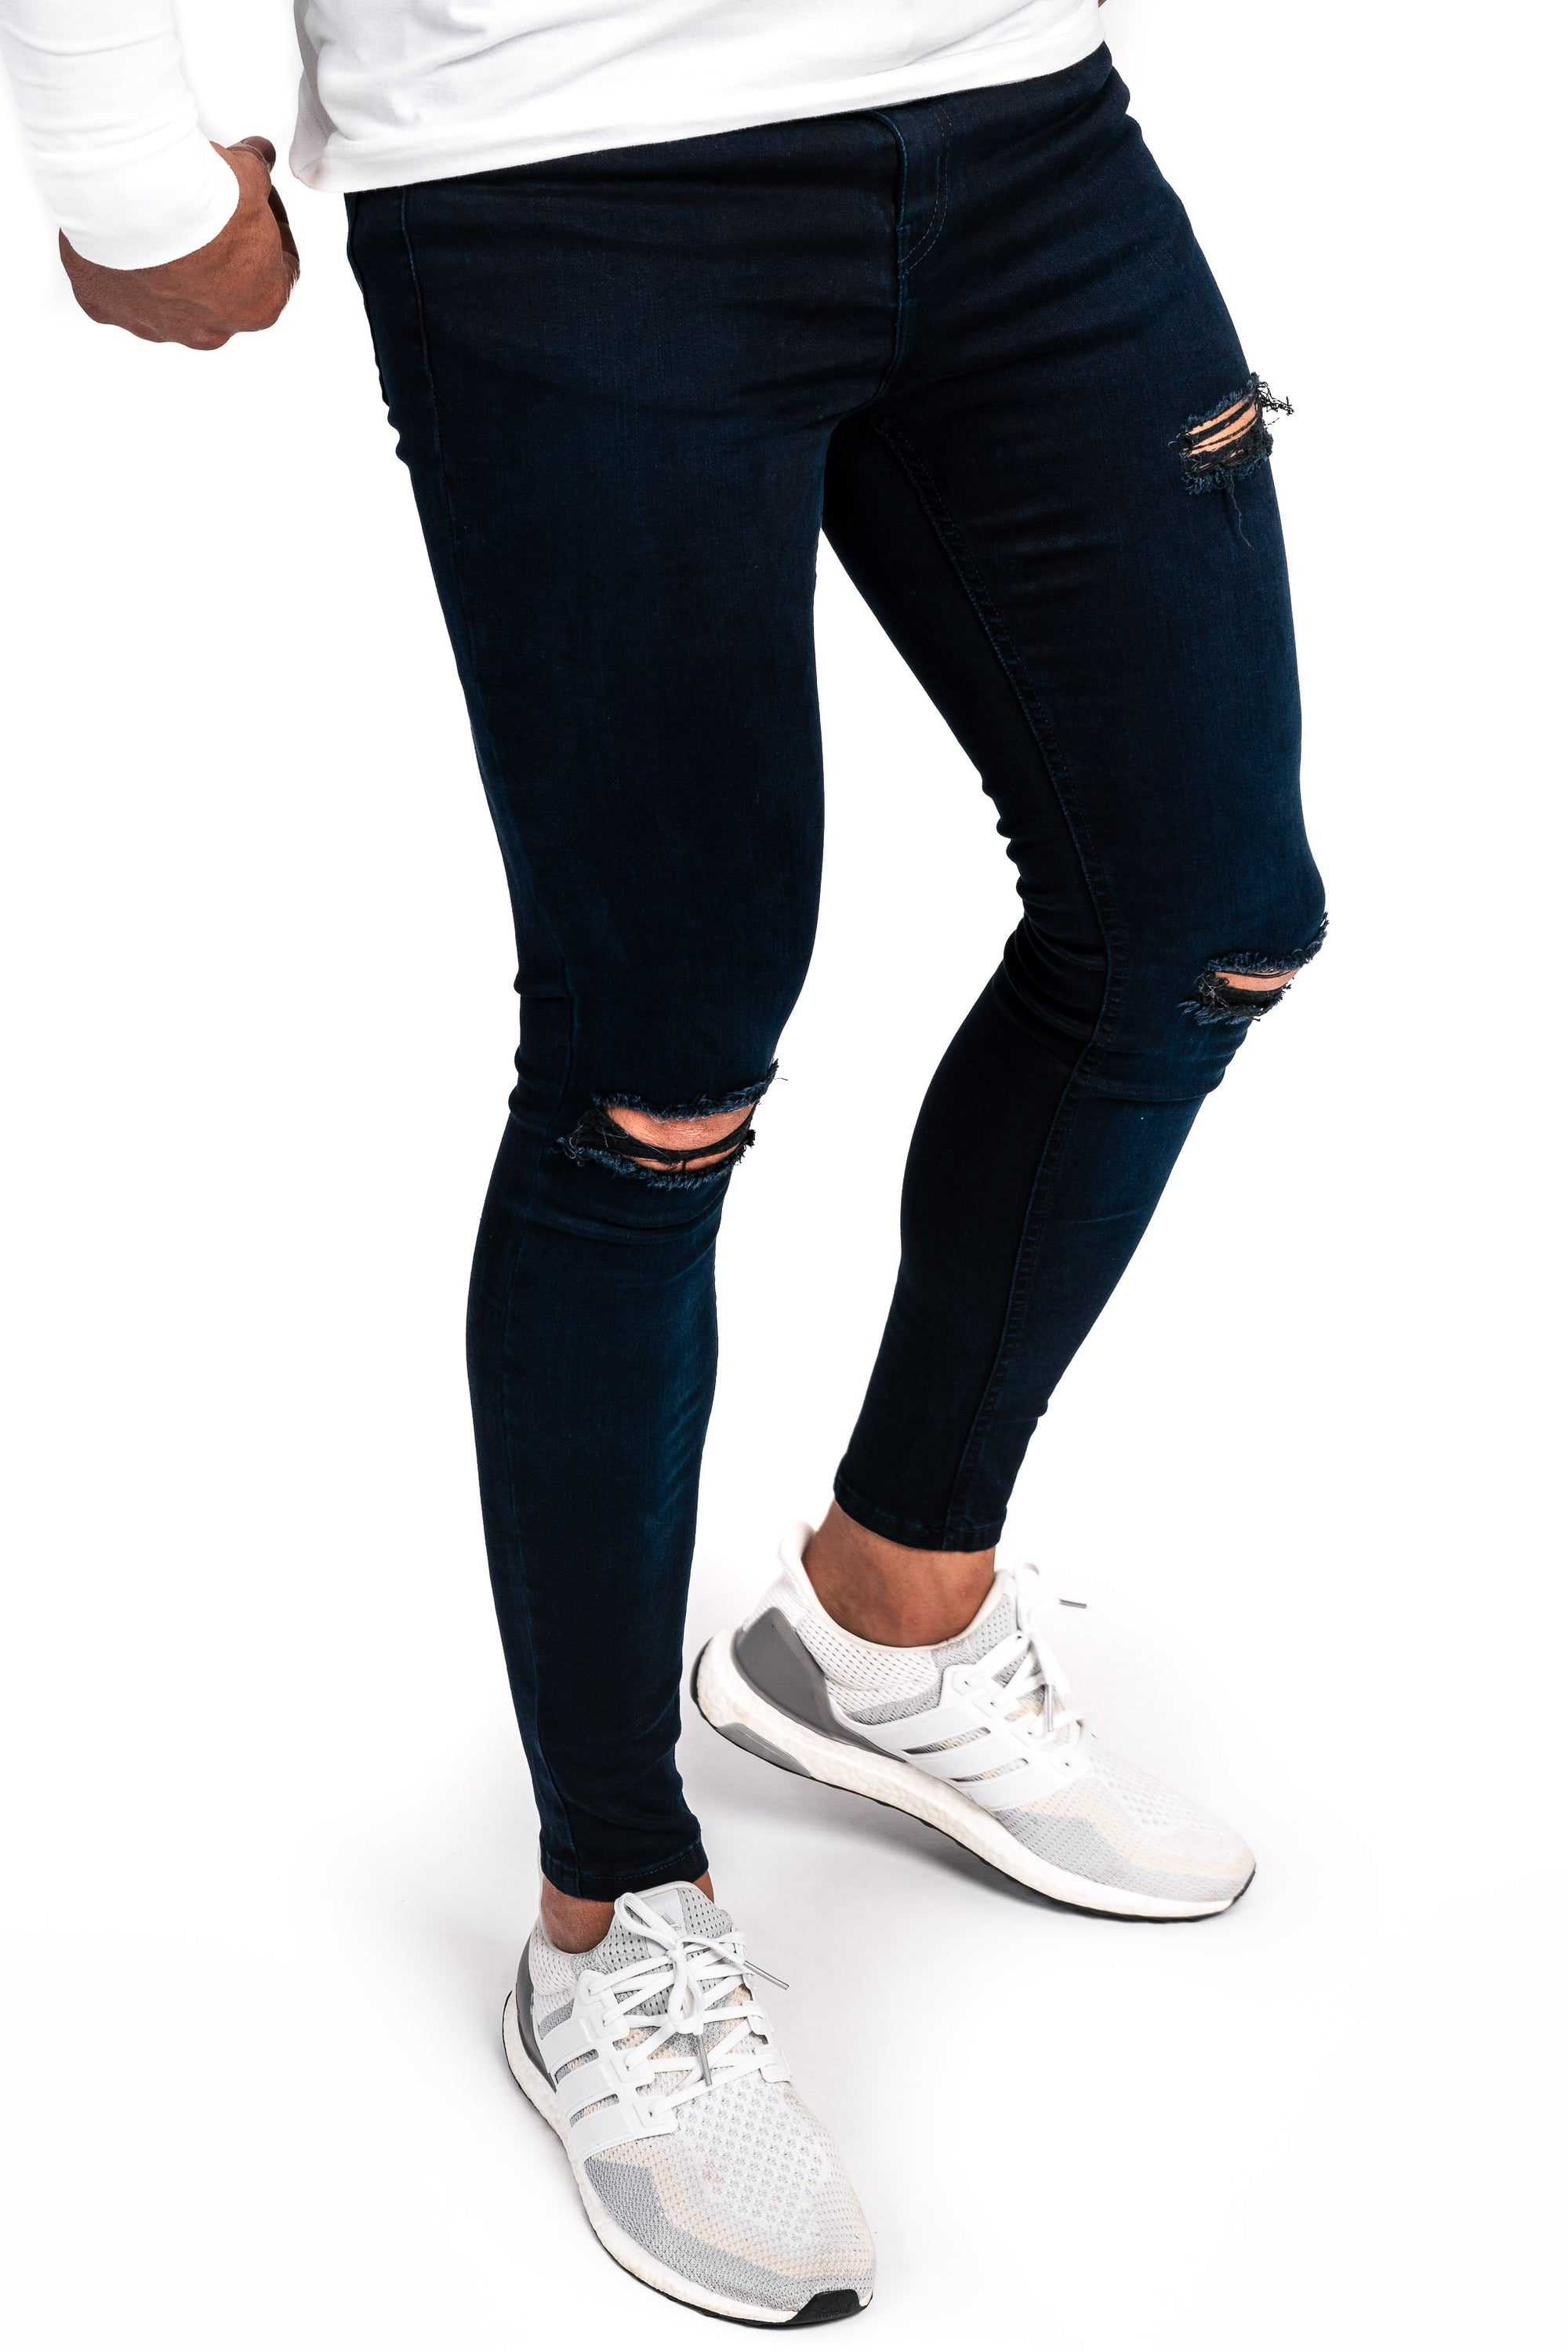 Mens Regular Ripped Fitjeans - Black Blue